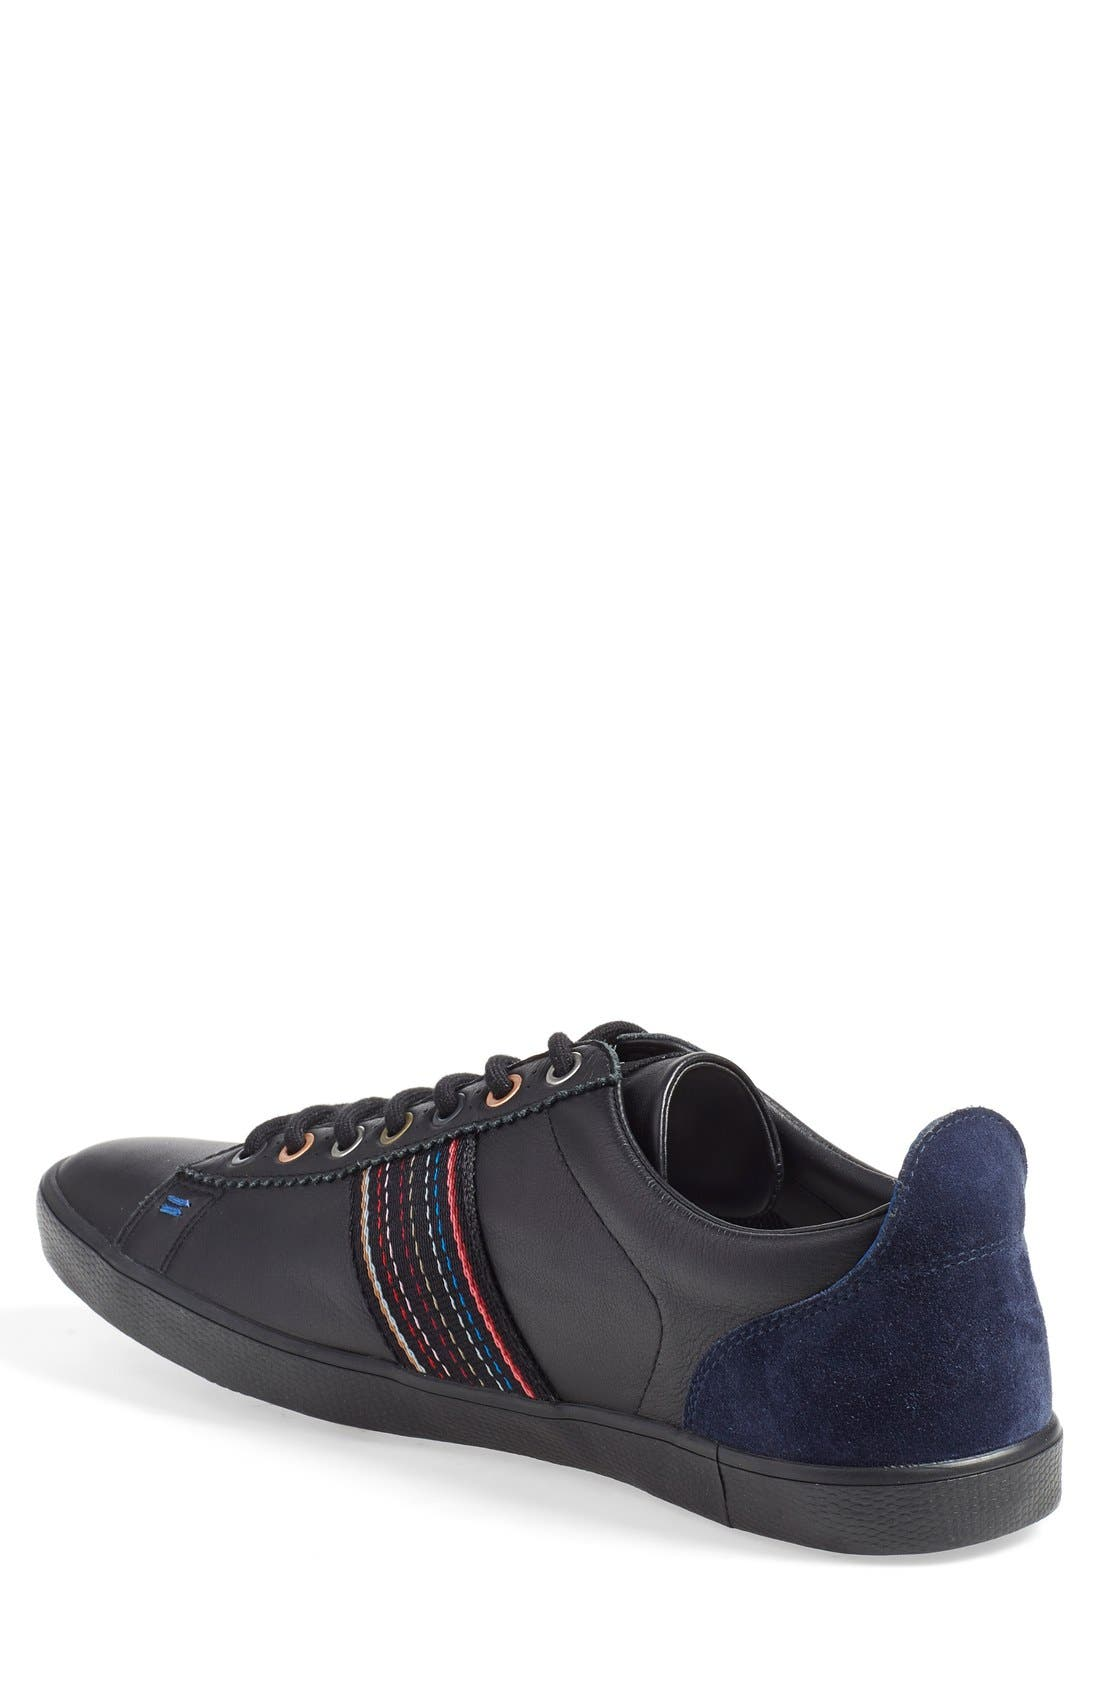 Alternate Image 2  - Paul Smith 'Osmo' Sneaker (Men)